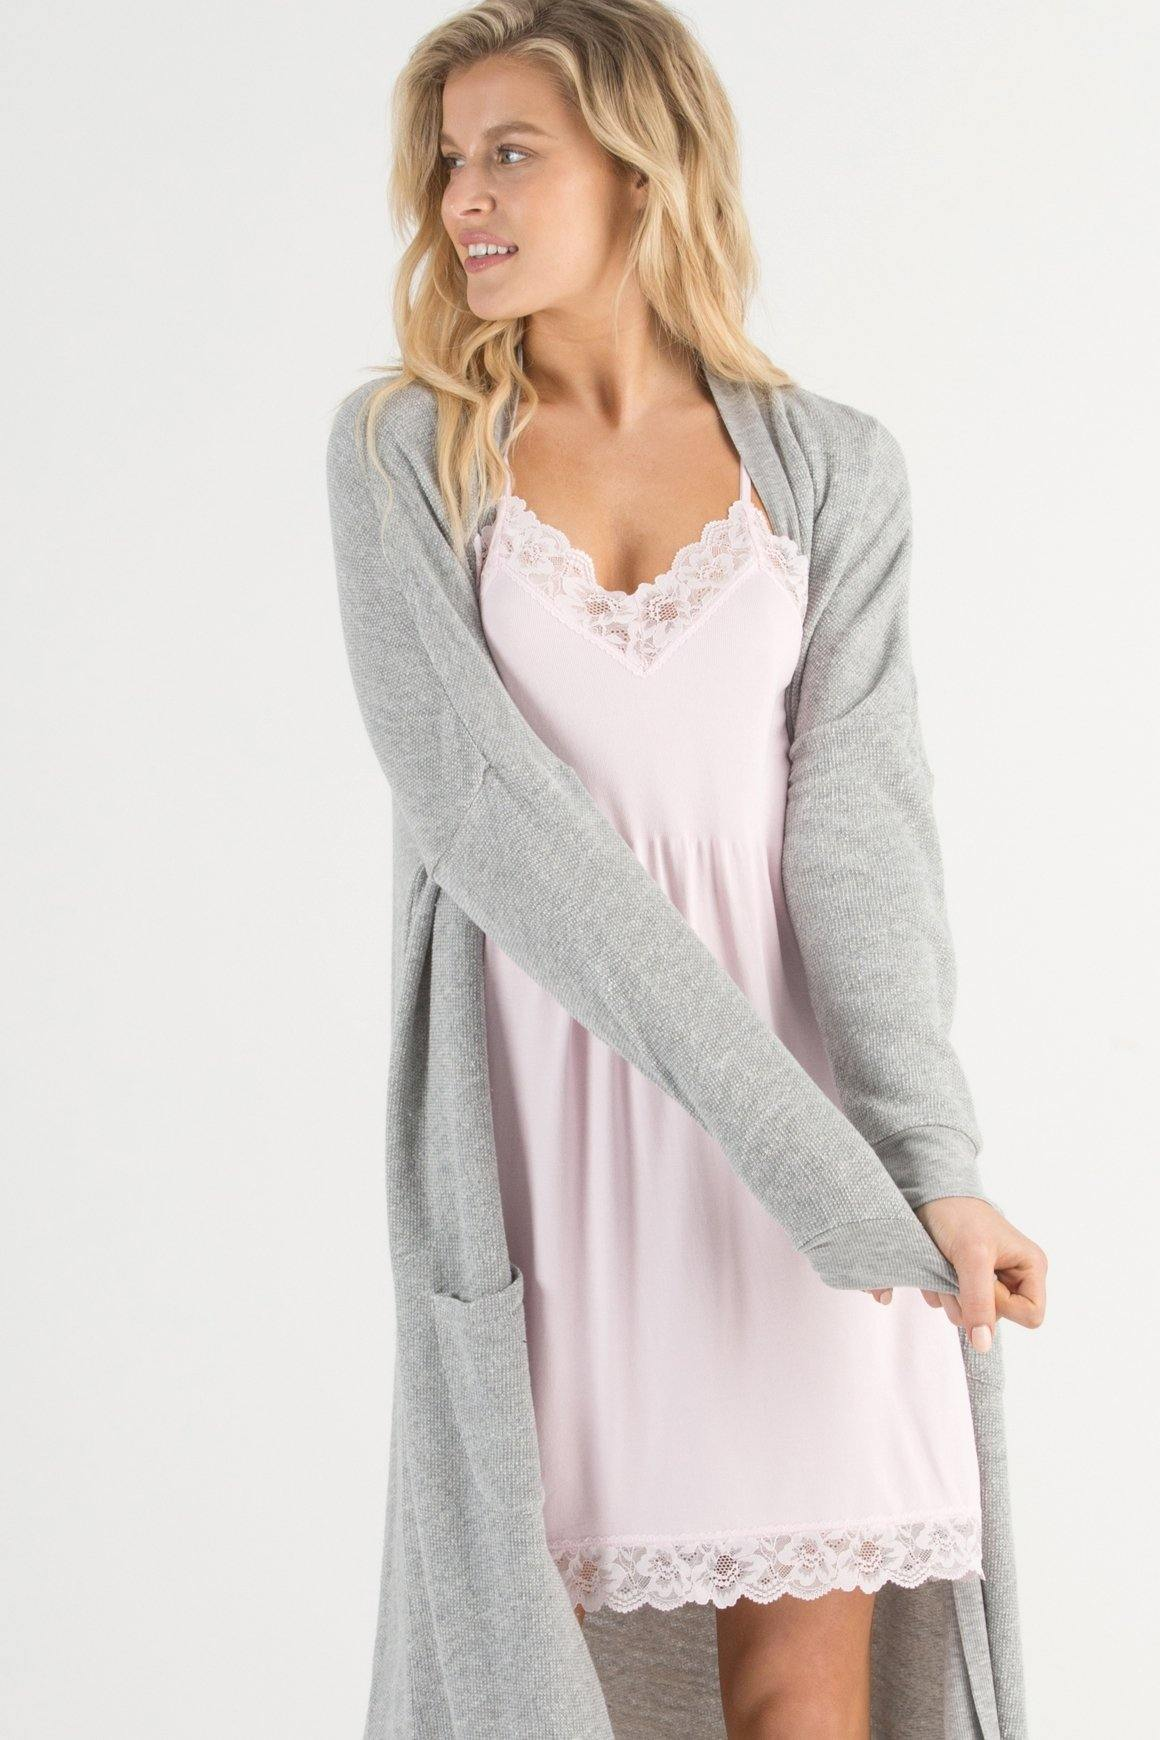 Leisure Lover Cardigan